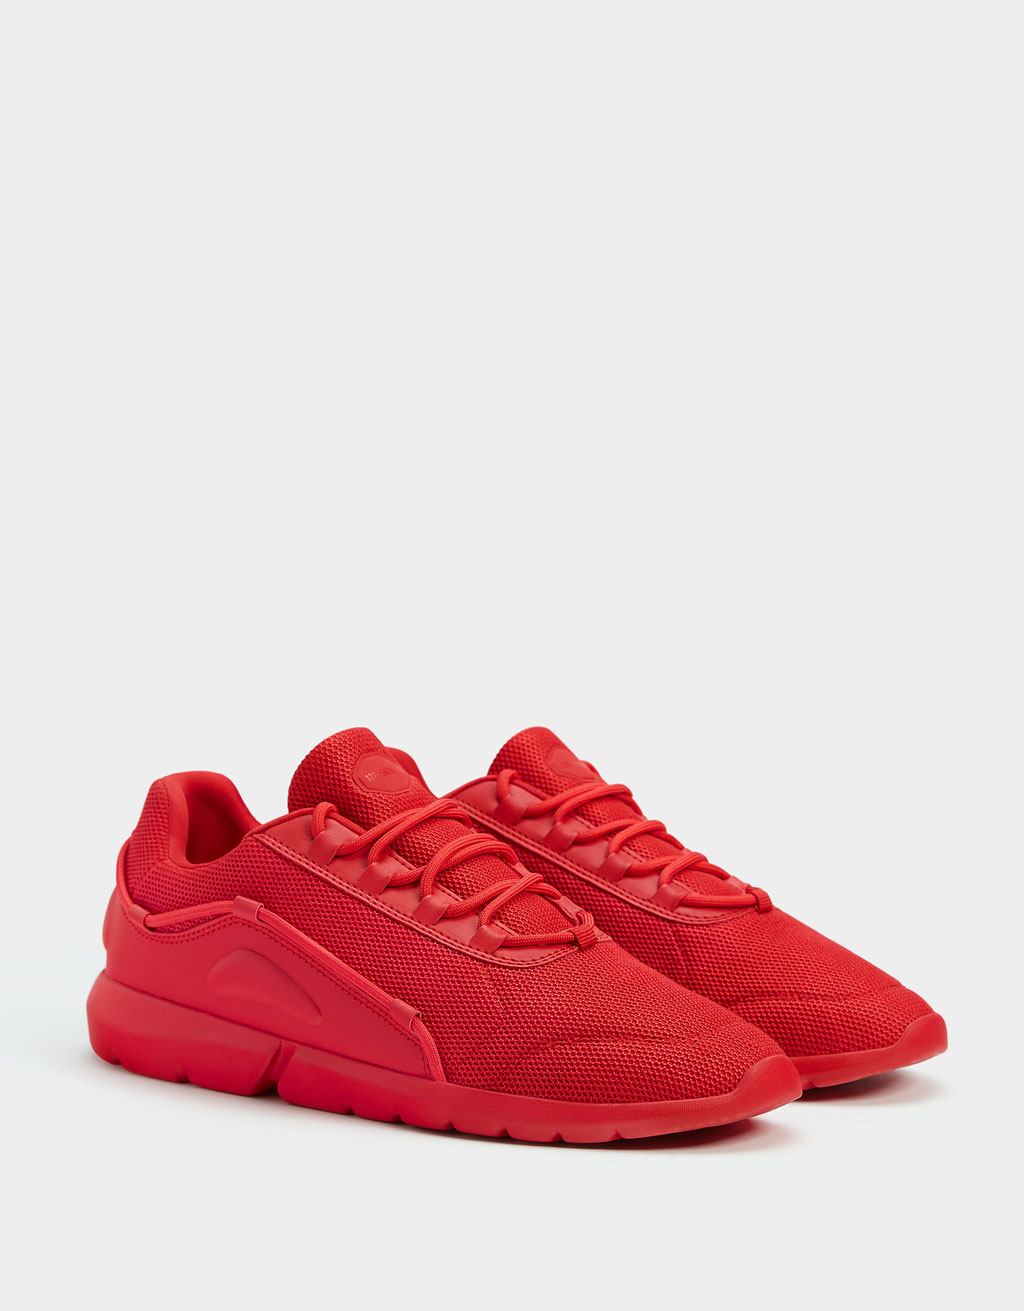 Men's monochrome trainers red